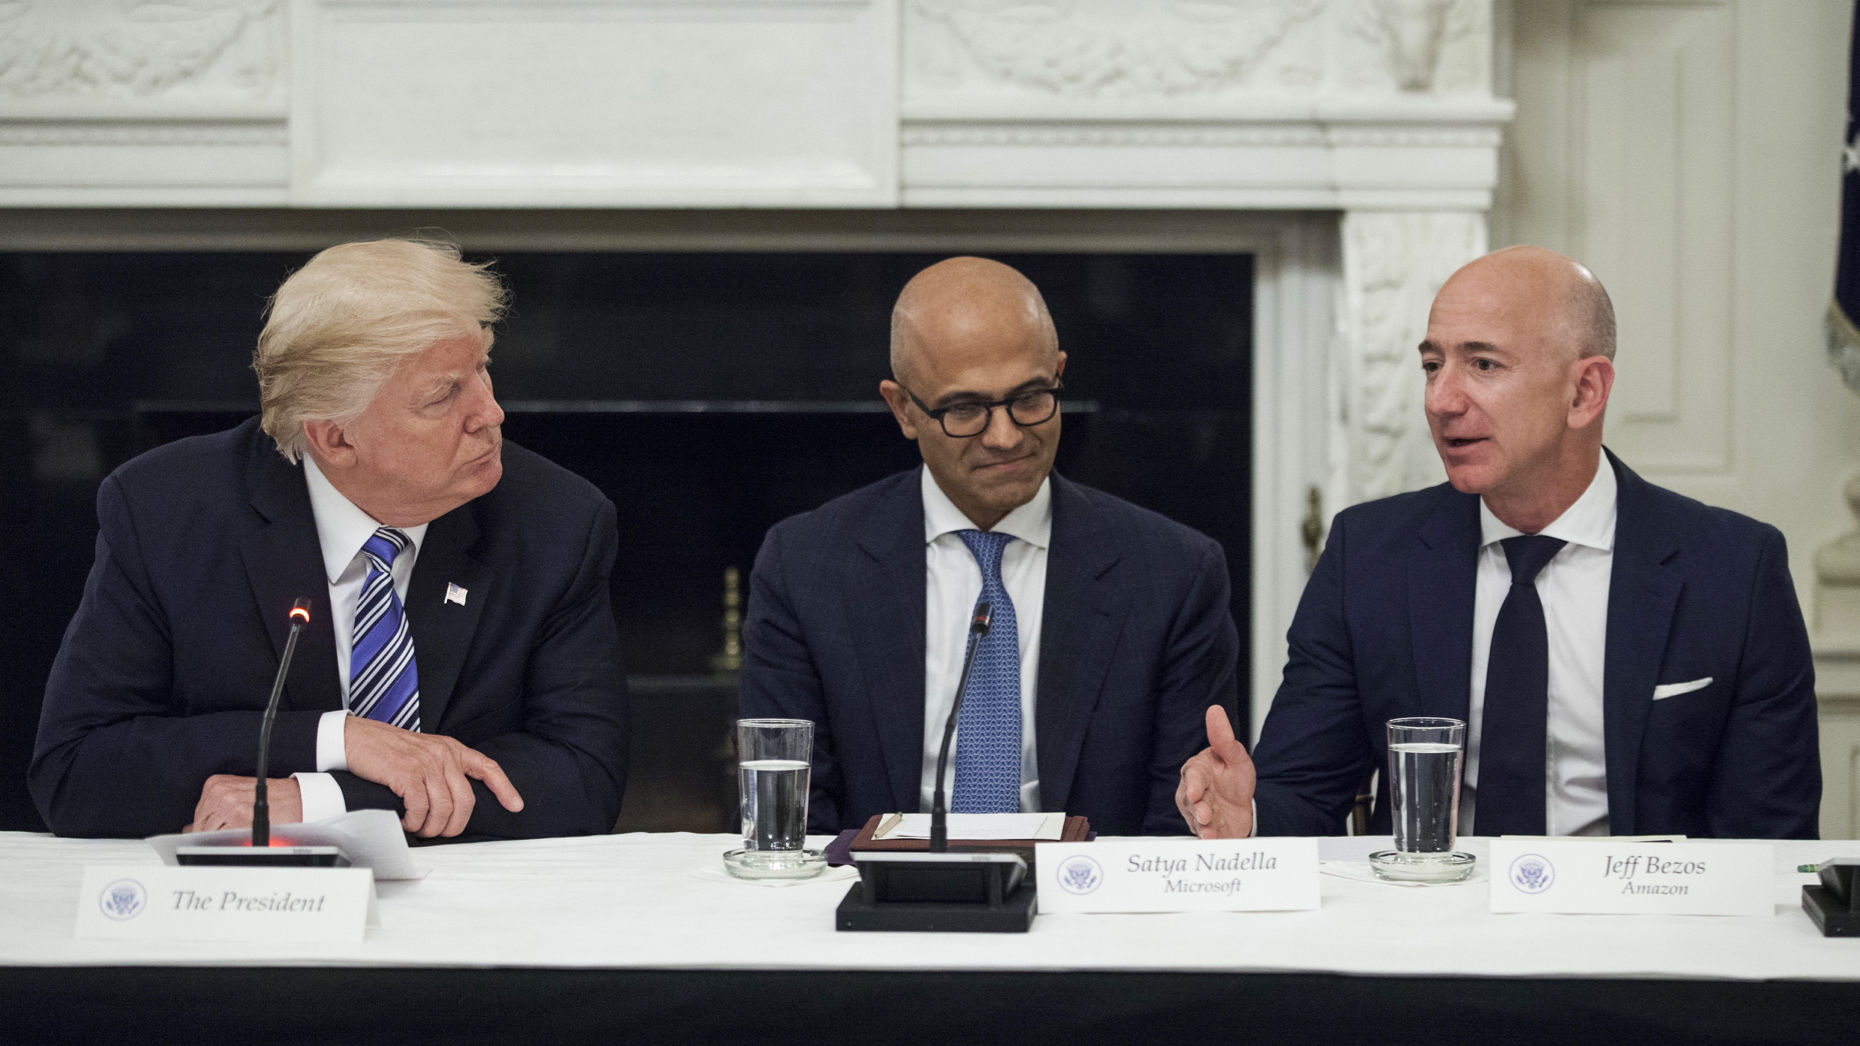 President Donald Trump, Microsoft CEO Satya Nadella and Amazon CEO Jeff Bezos at a White House event last year. Photo by Bloomberg